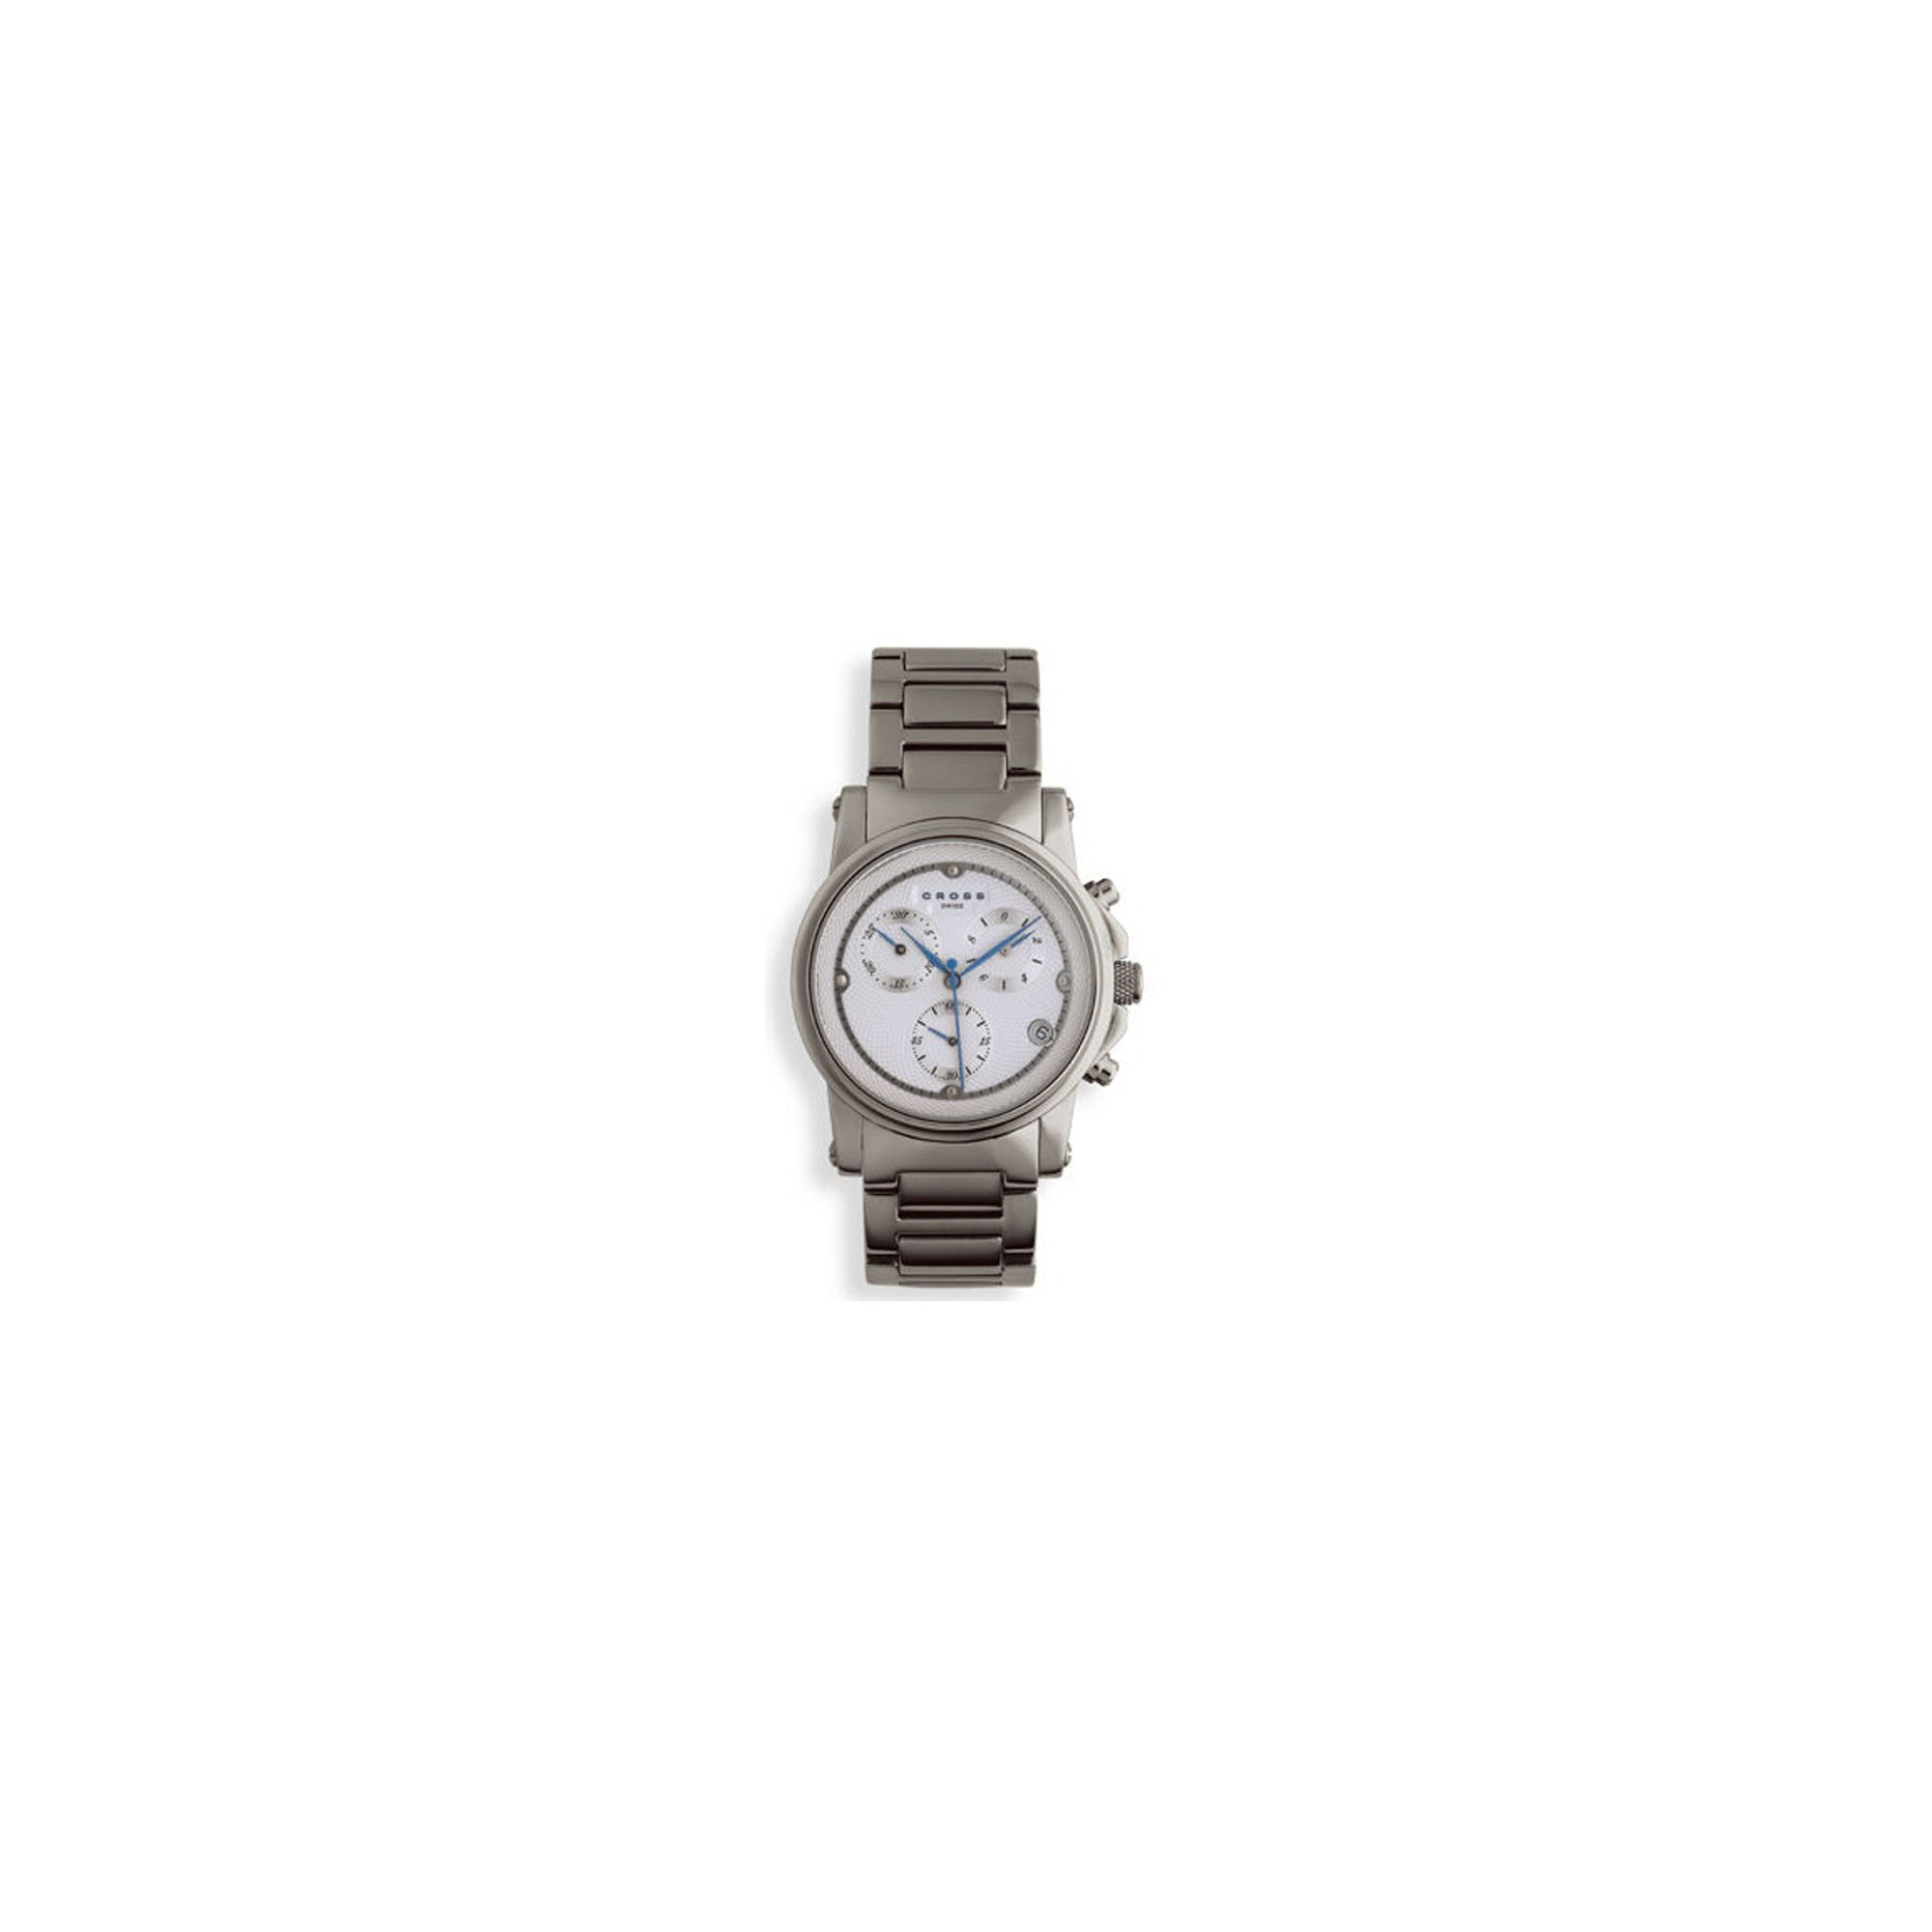 ''Cross Milan Men's Chronograph White, all Stainless Steel watch'' at Tescos Direct